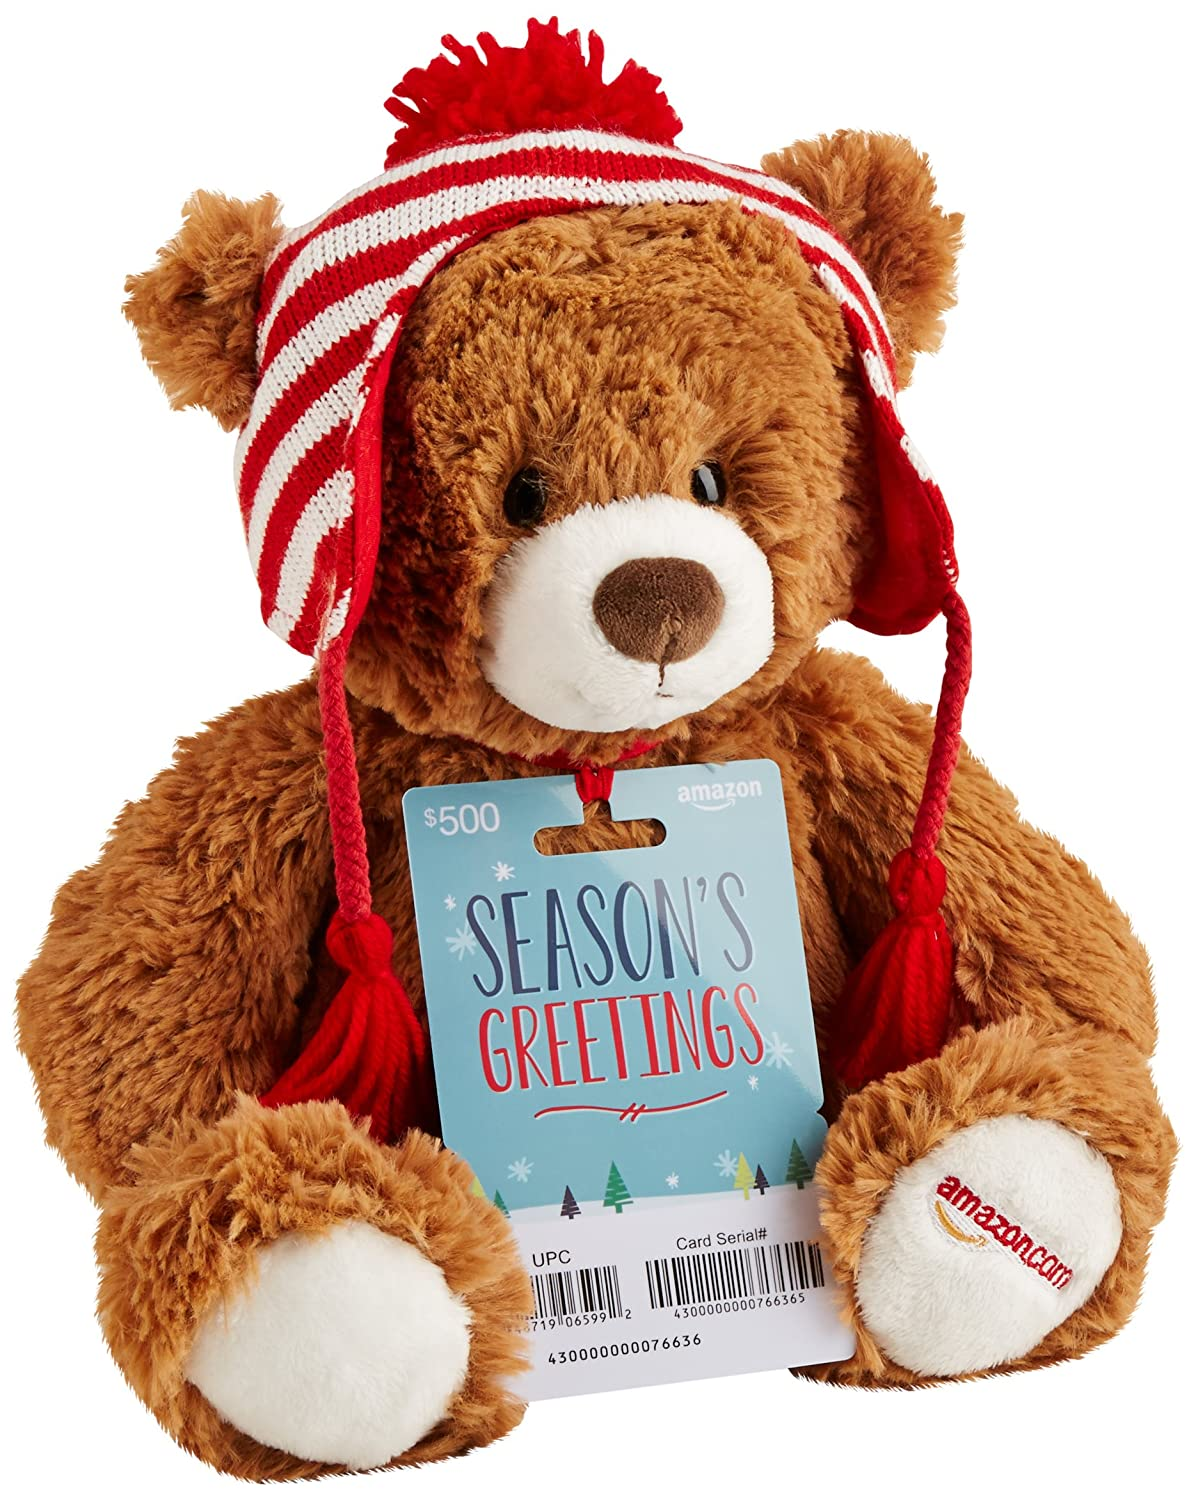 Amazon.com Gift Cards - With Limited Edition Gund Teddy Bear - Free One-Day Shipping (Limited Quantities Available)